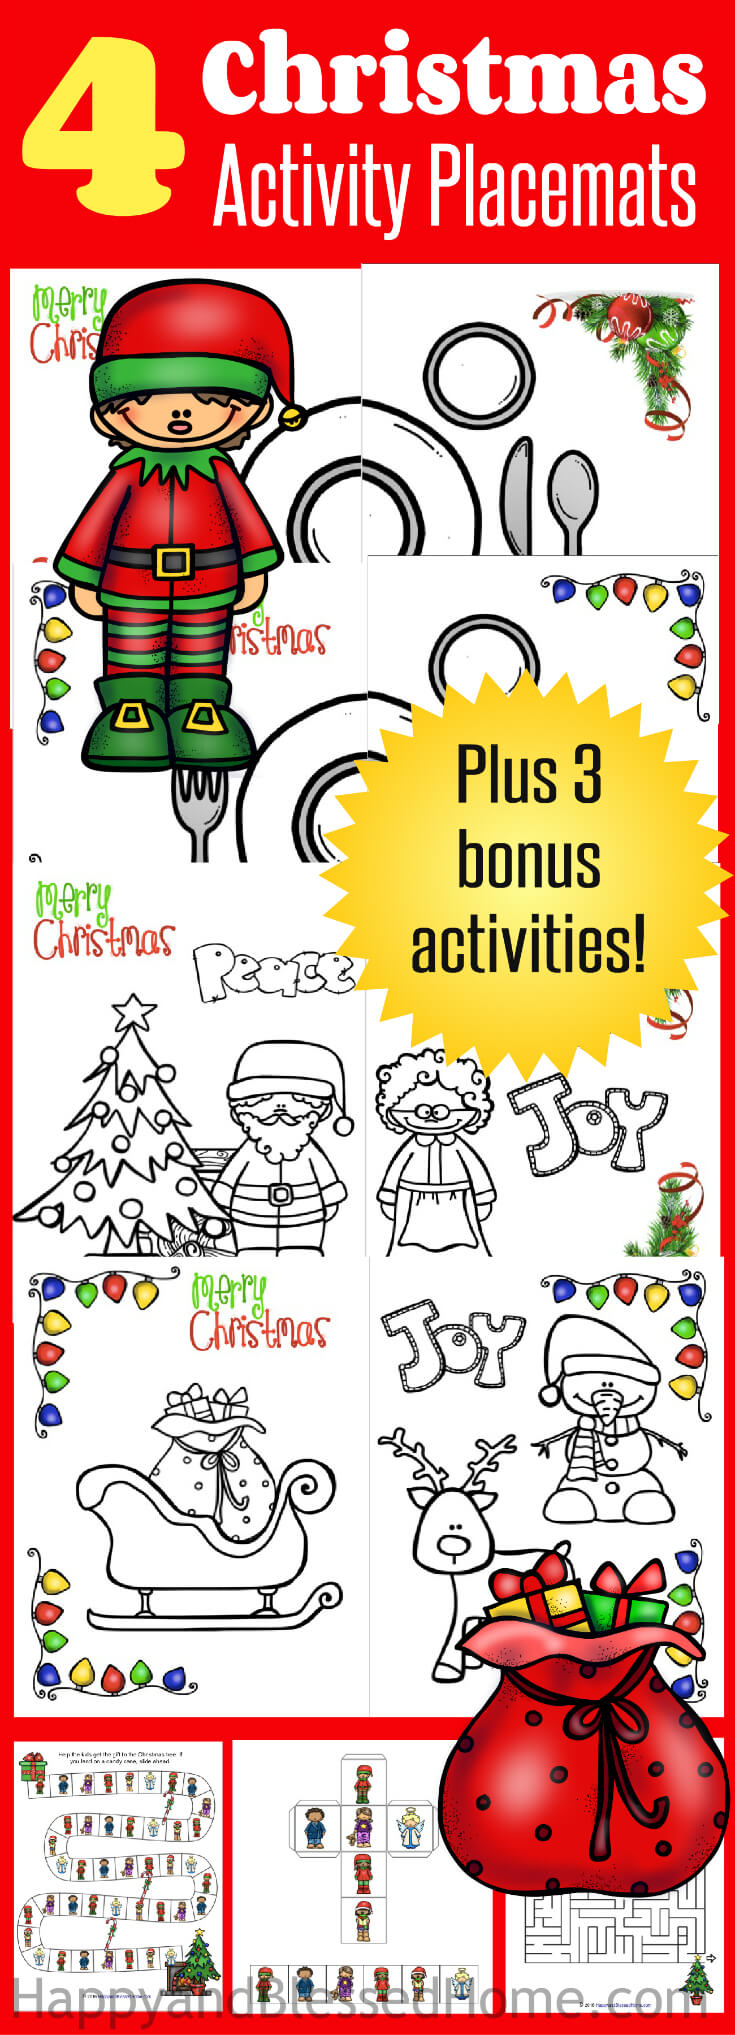 Christmas Placemats Activity Pack from HappyandBlessedHome.com